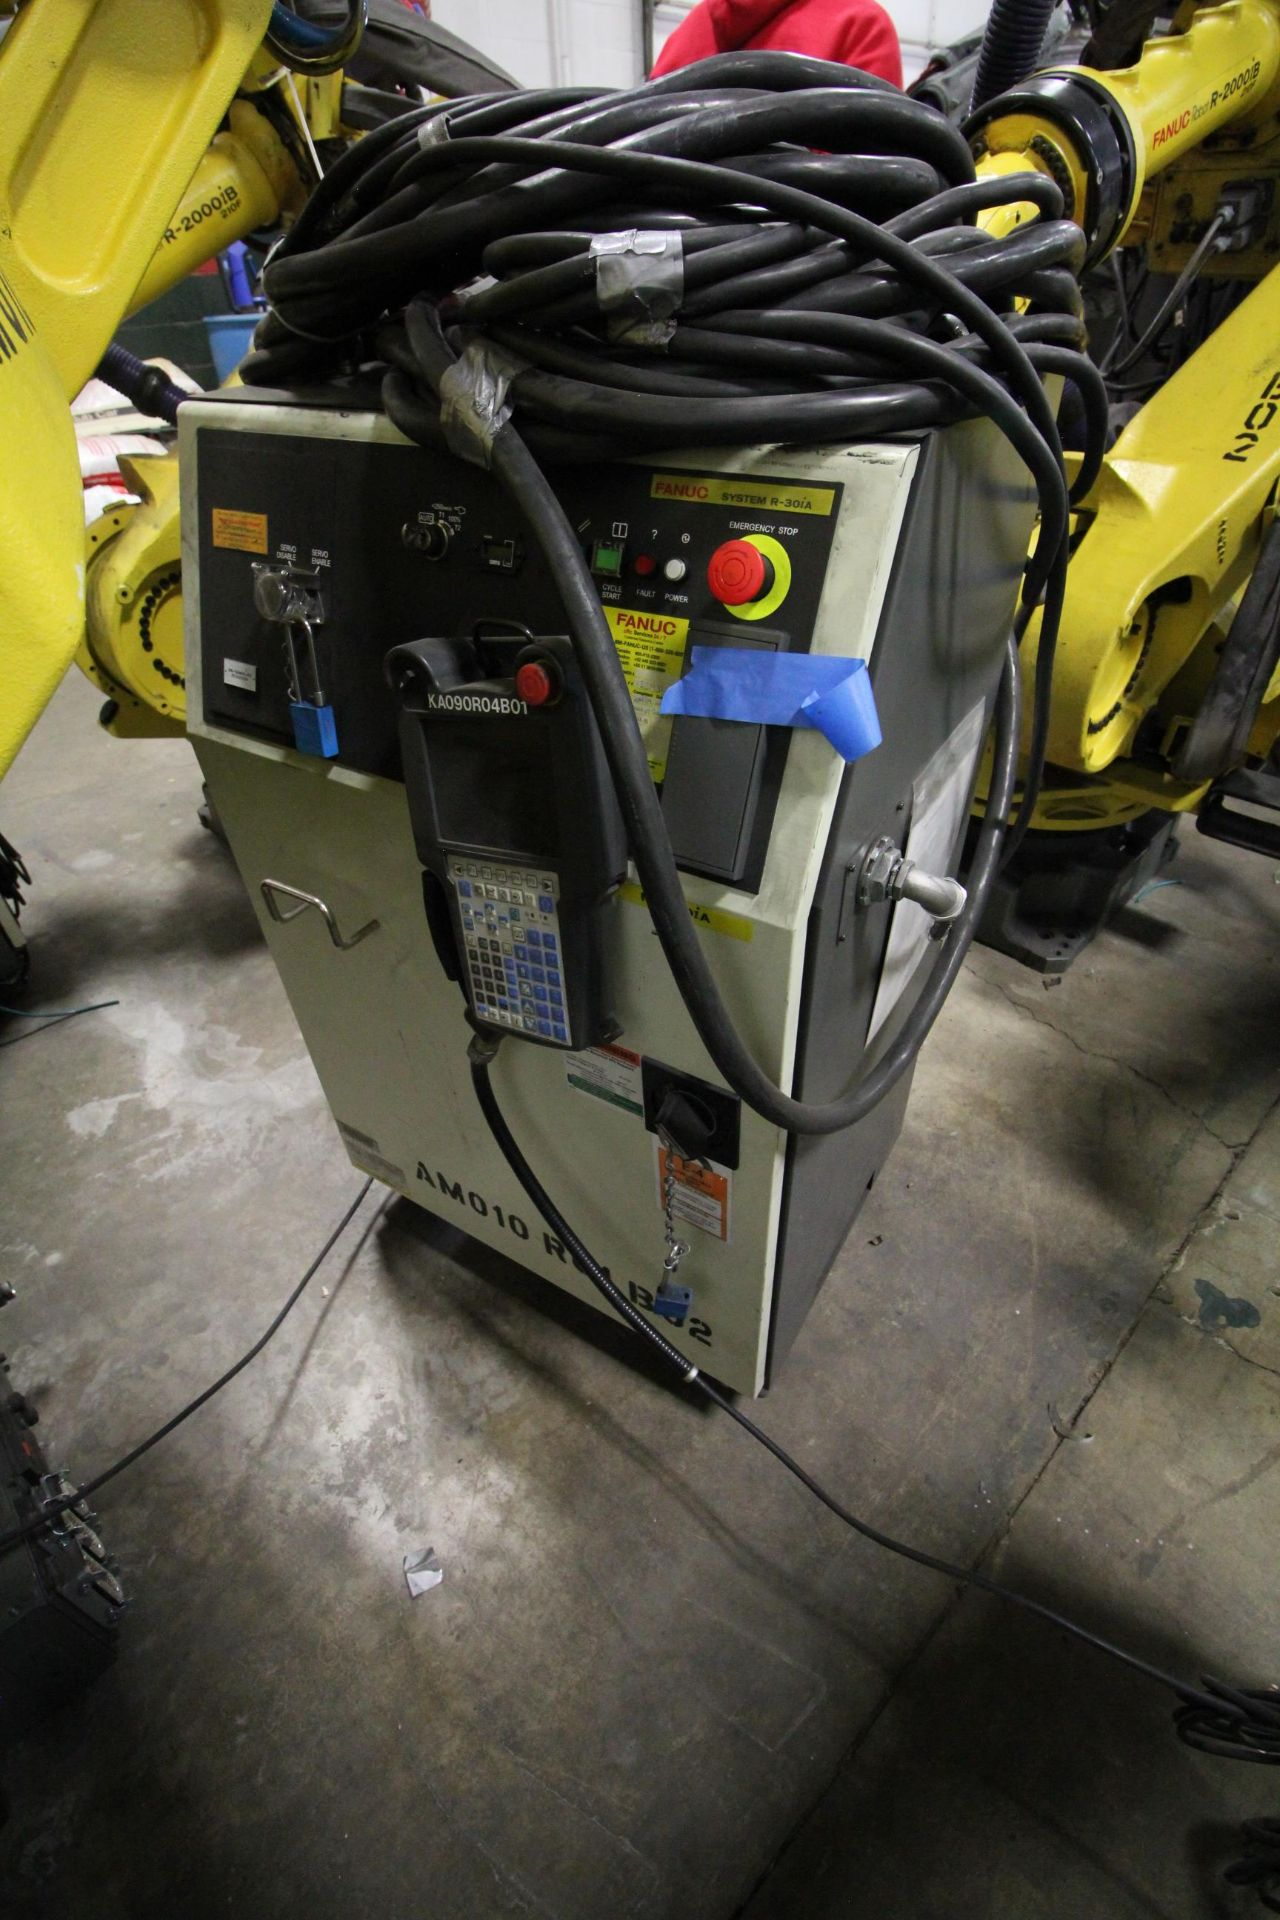 FANUC ROBOT M-900iA/400L WITH R-30iA CONTROLLER, TEACHPENDANT AND CABLES, SN 153431, YEAR 2014 - Image 5 of 11